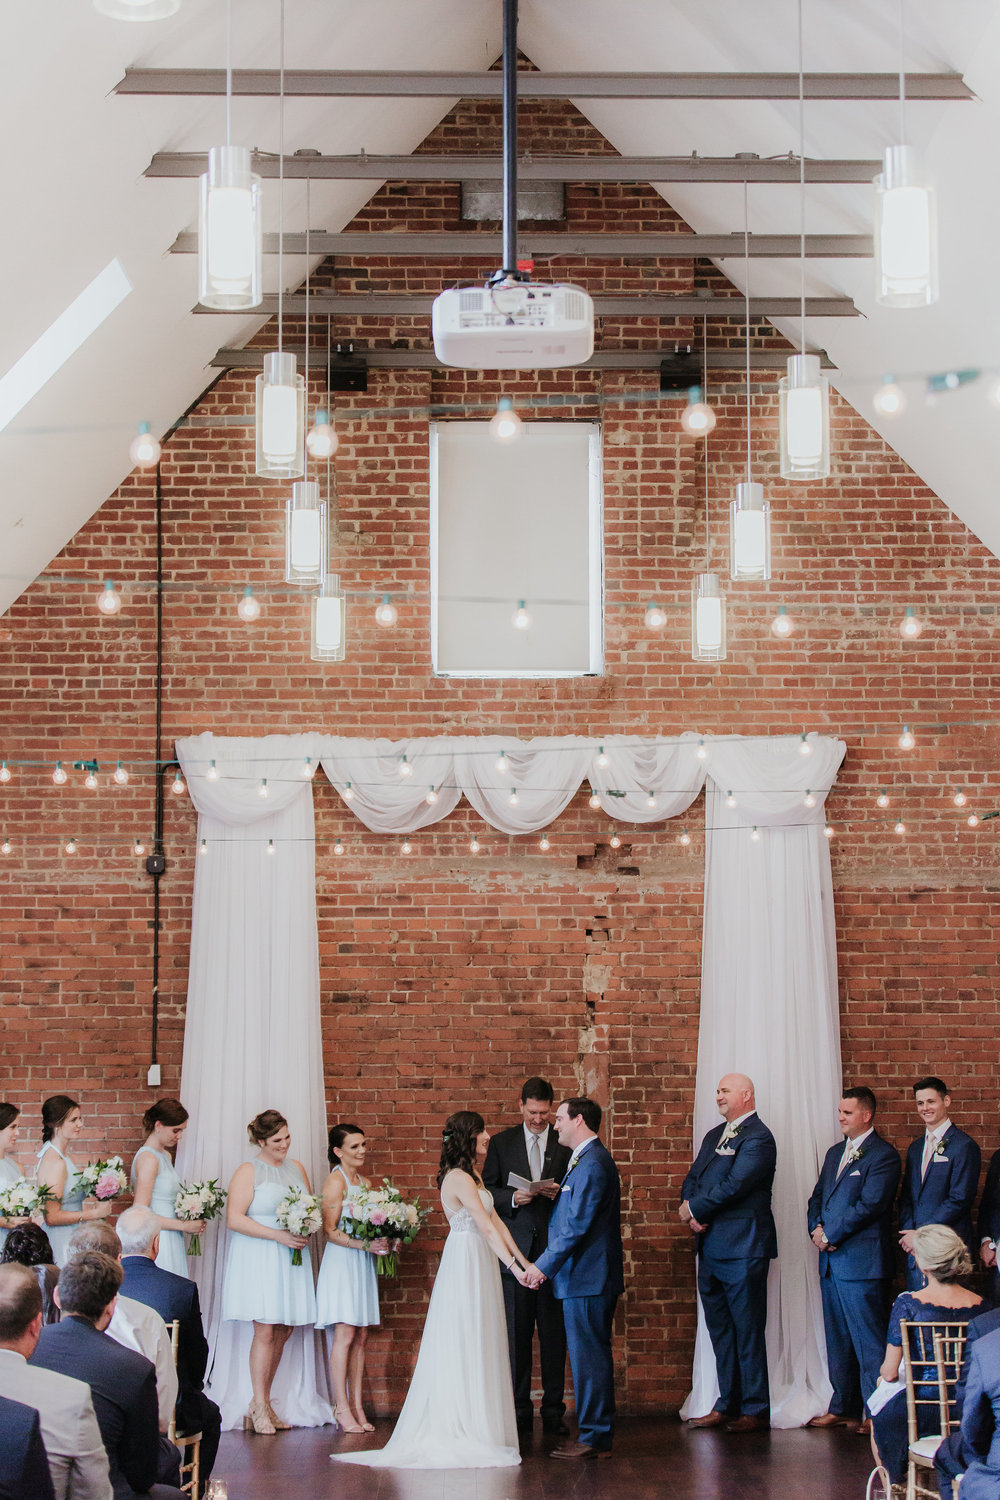 The Great Room at Top of the Hill Wedding - Jocelyn & Ryan Photography